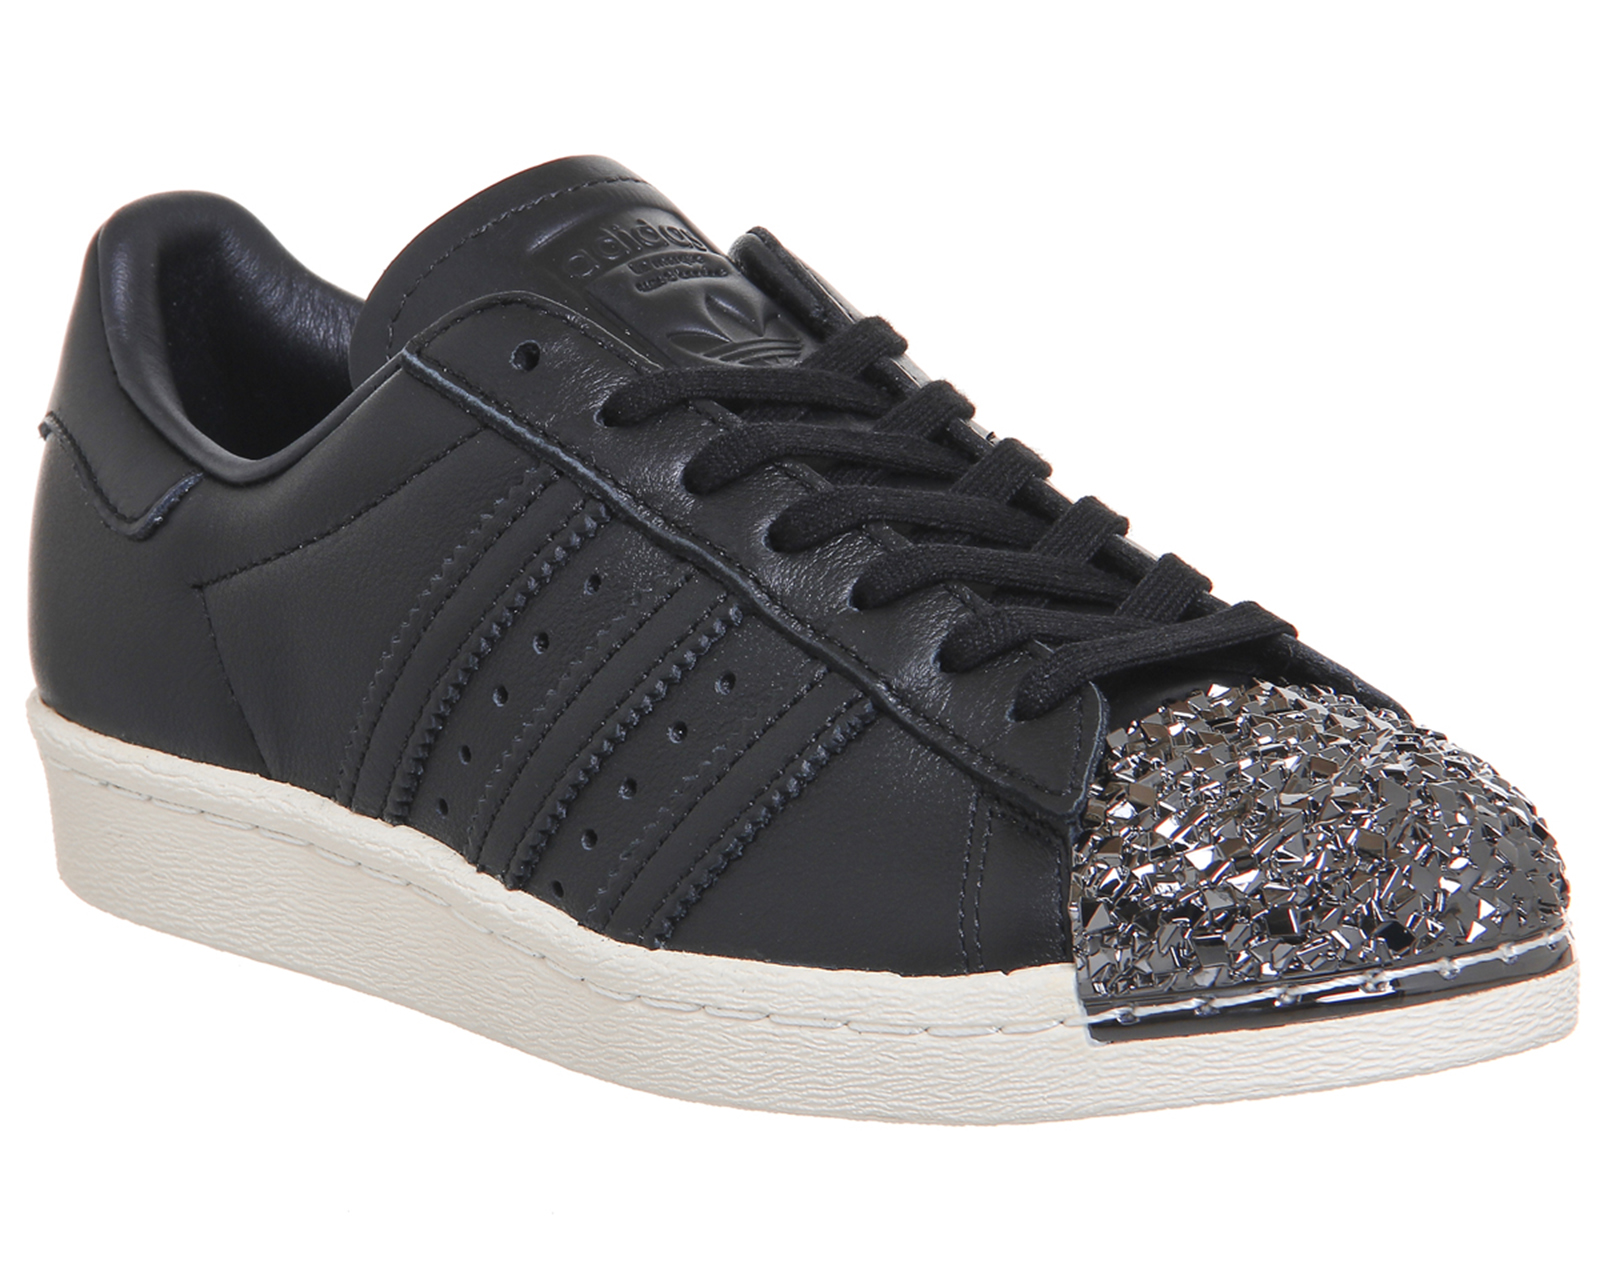 adidas superstar 80s metal toe zwart